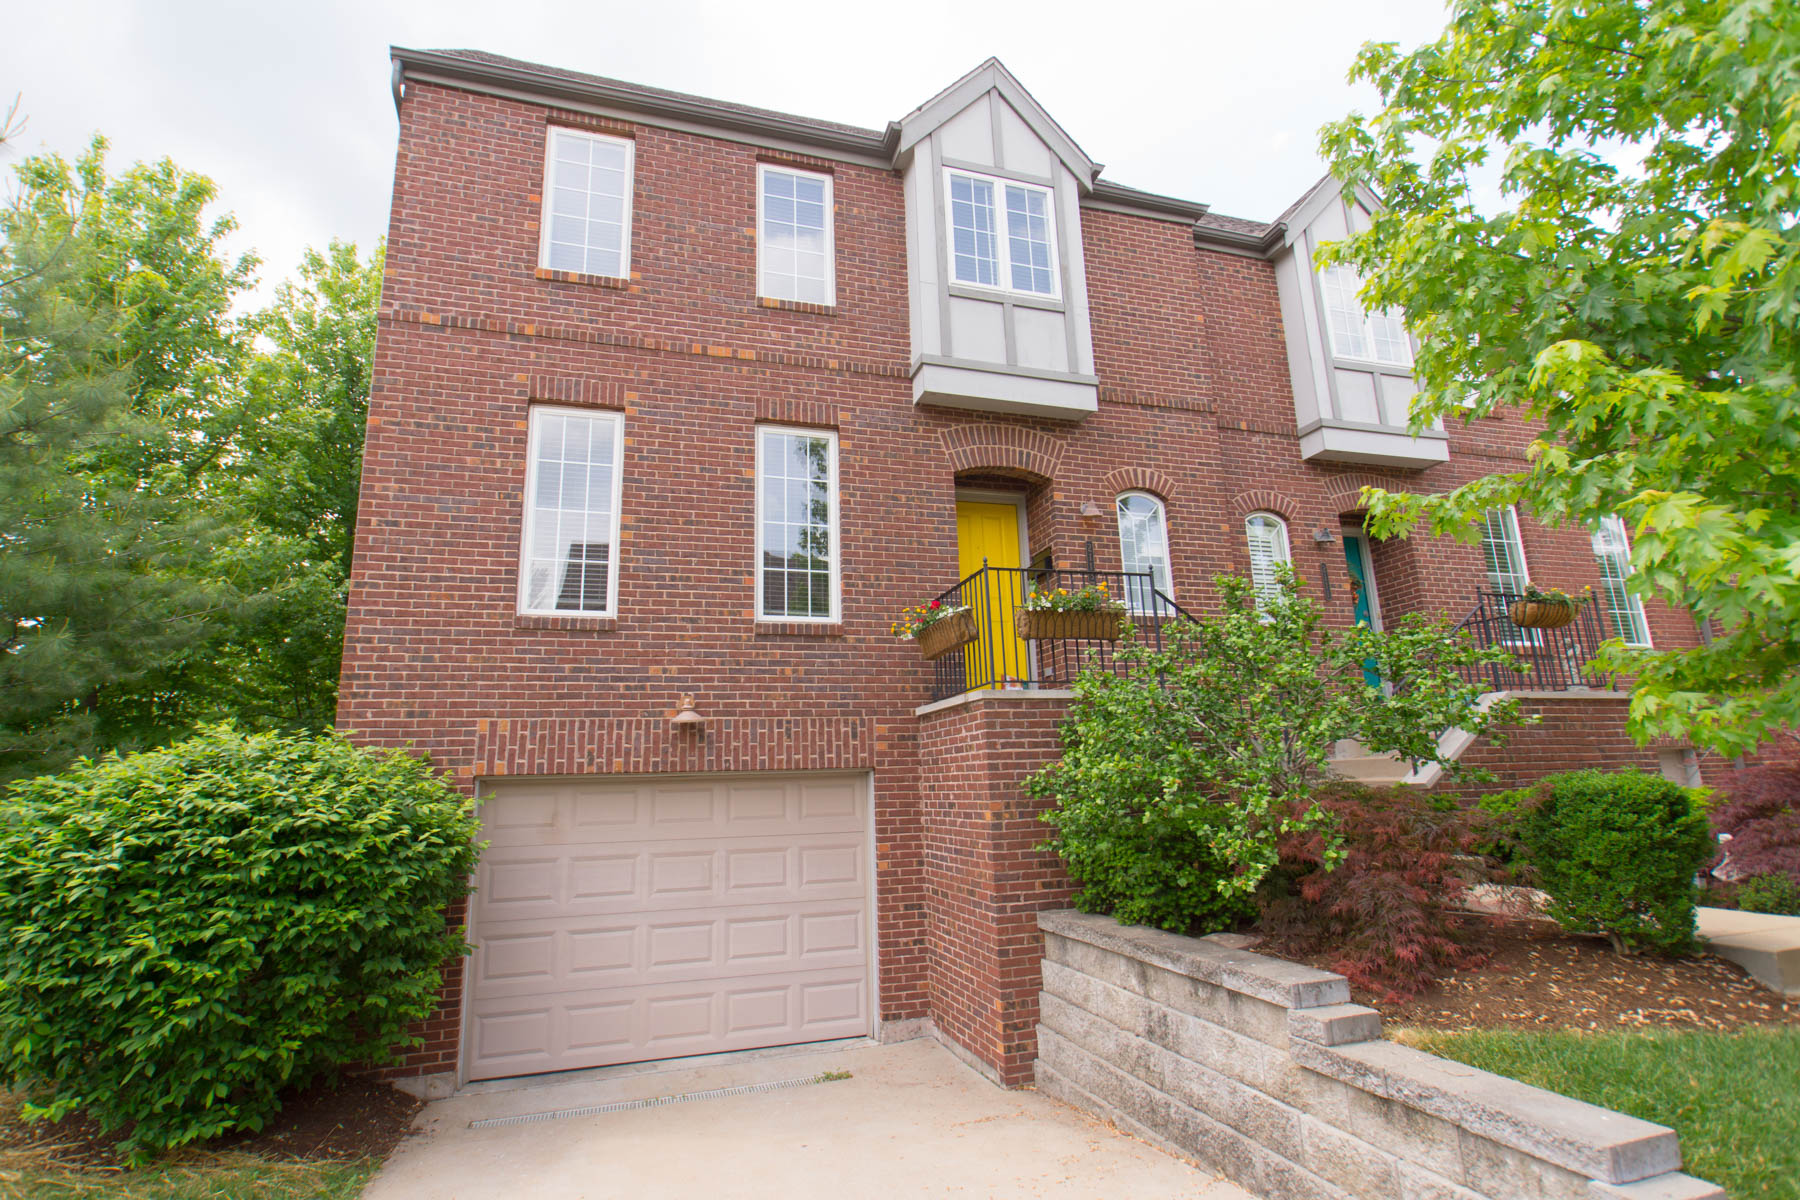 Single Family Home for Sale at Dogtown Walk 2113 Dogtown Walk St. Louis, Missouri 63139 United States